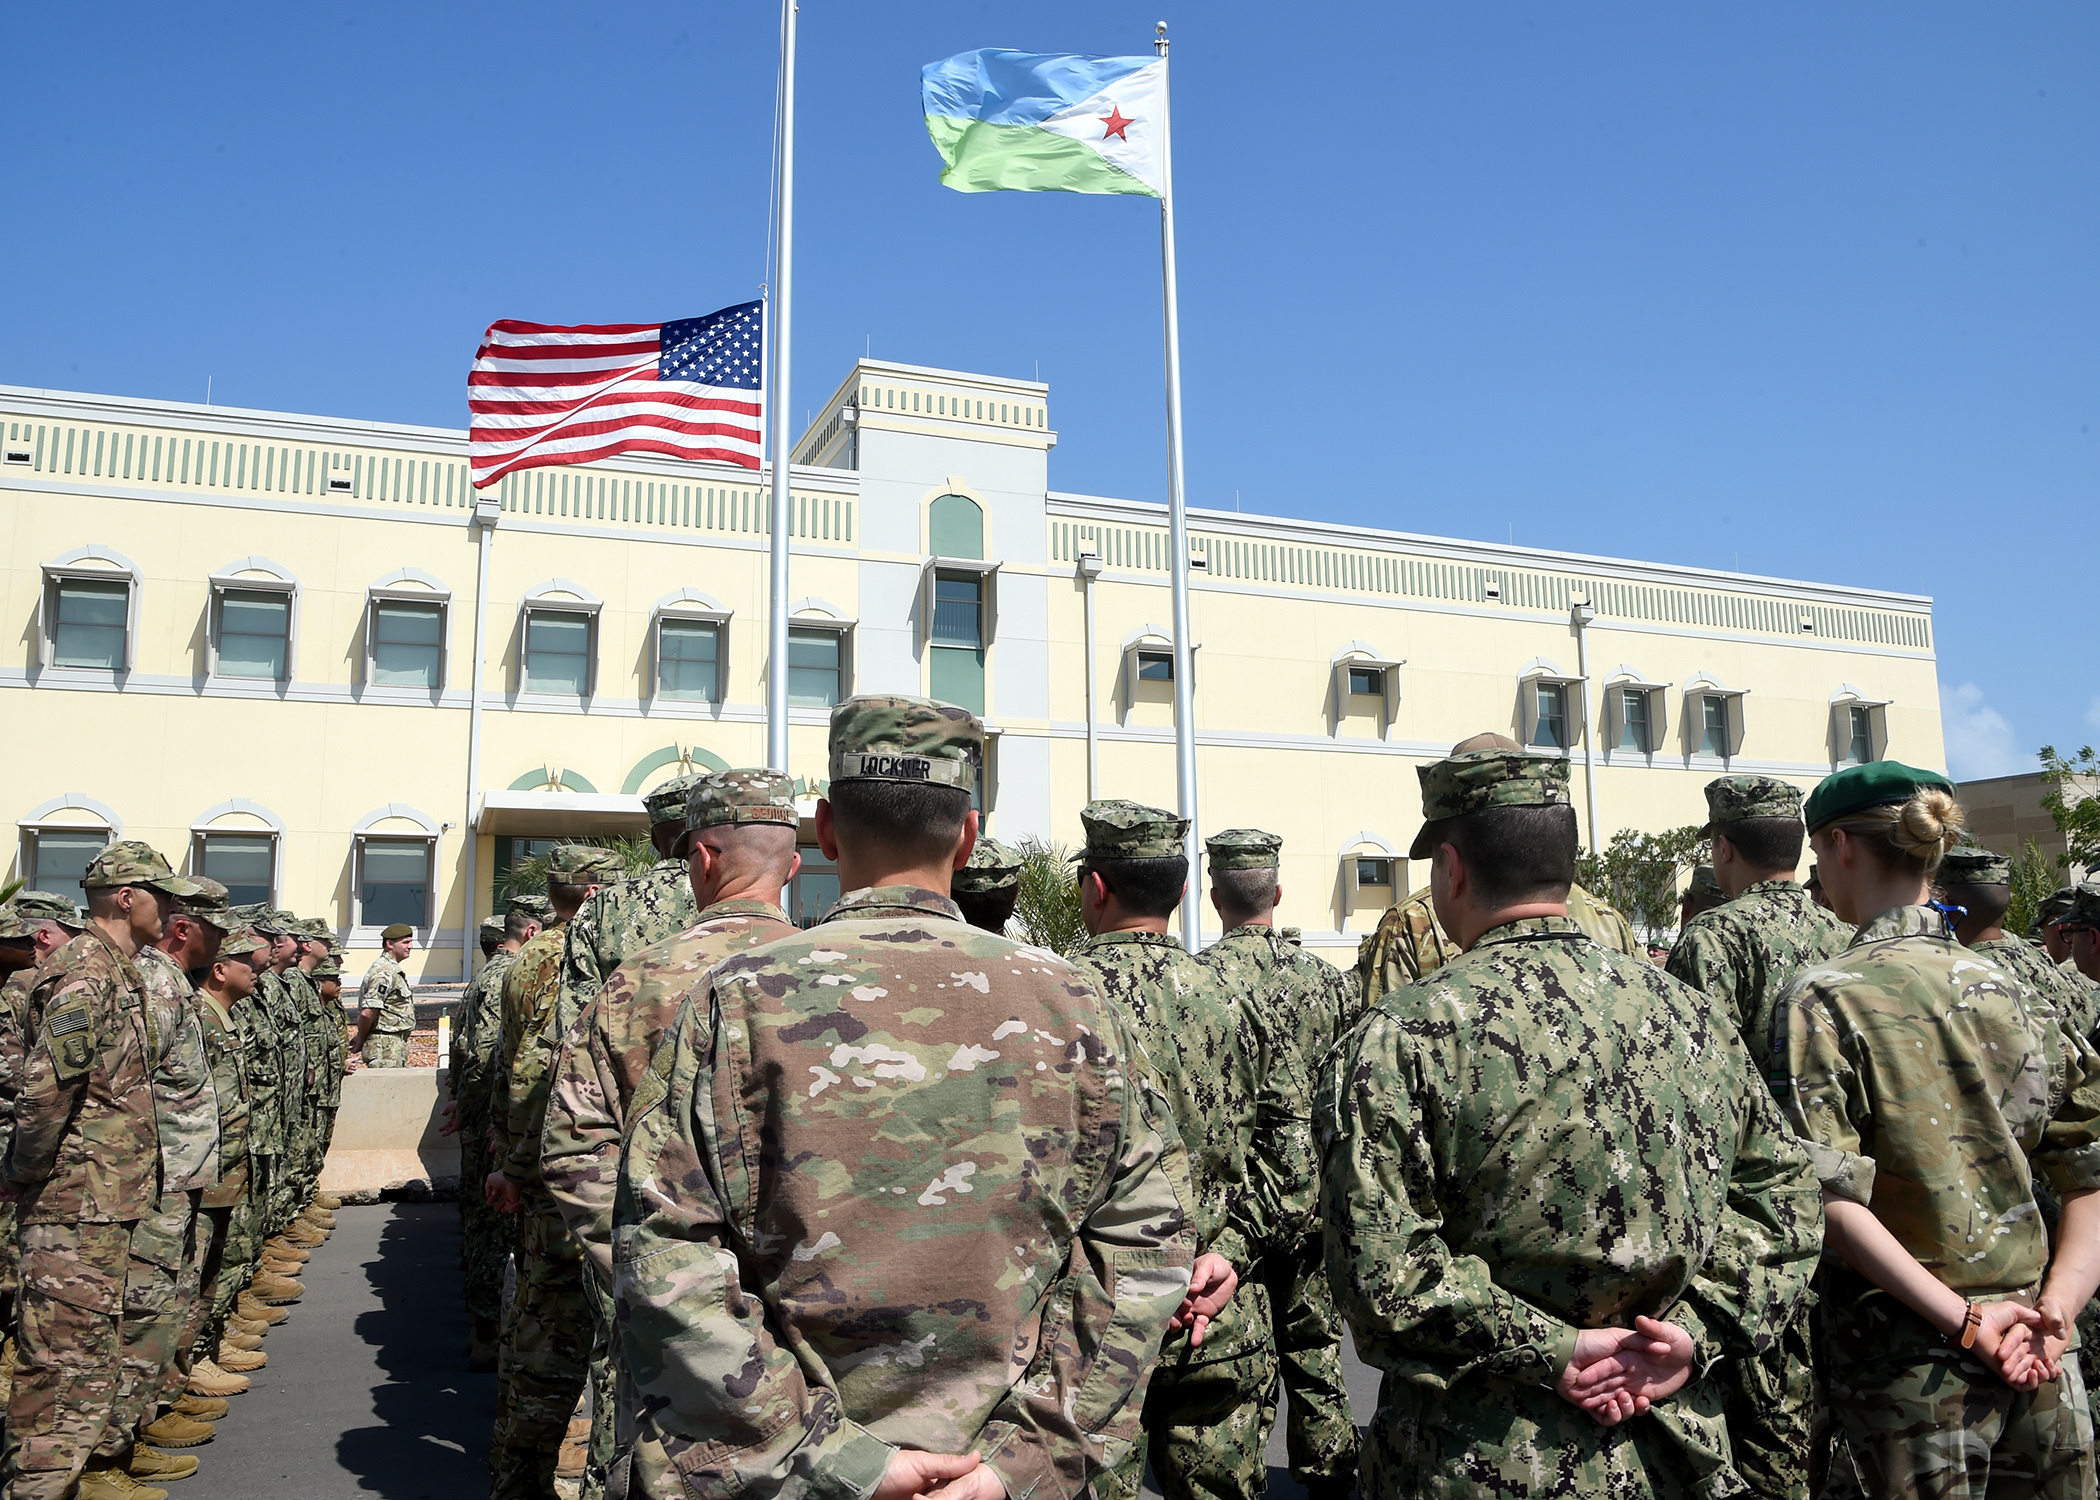 Joint forces from Combined Joint Task Force-Horn of Africa stand at parade rest during a ceremony honoring the late U.S. President George H.W. Bush at Camp Lemonnier, Djibouti, Dec. 5, 2018. (U.S. Navy Photo by Mass Communication Specialist 1st Class Nick Scott/released)